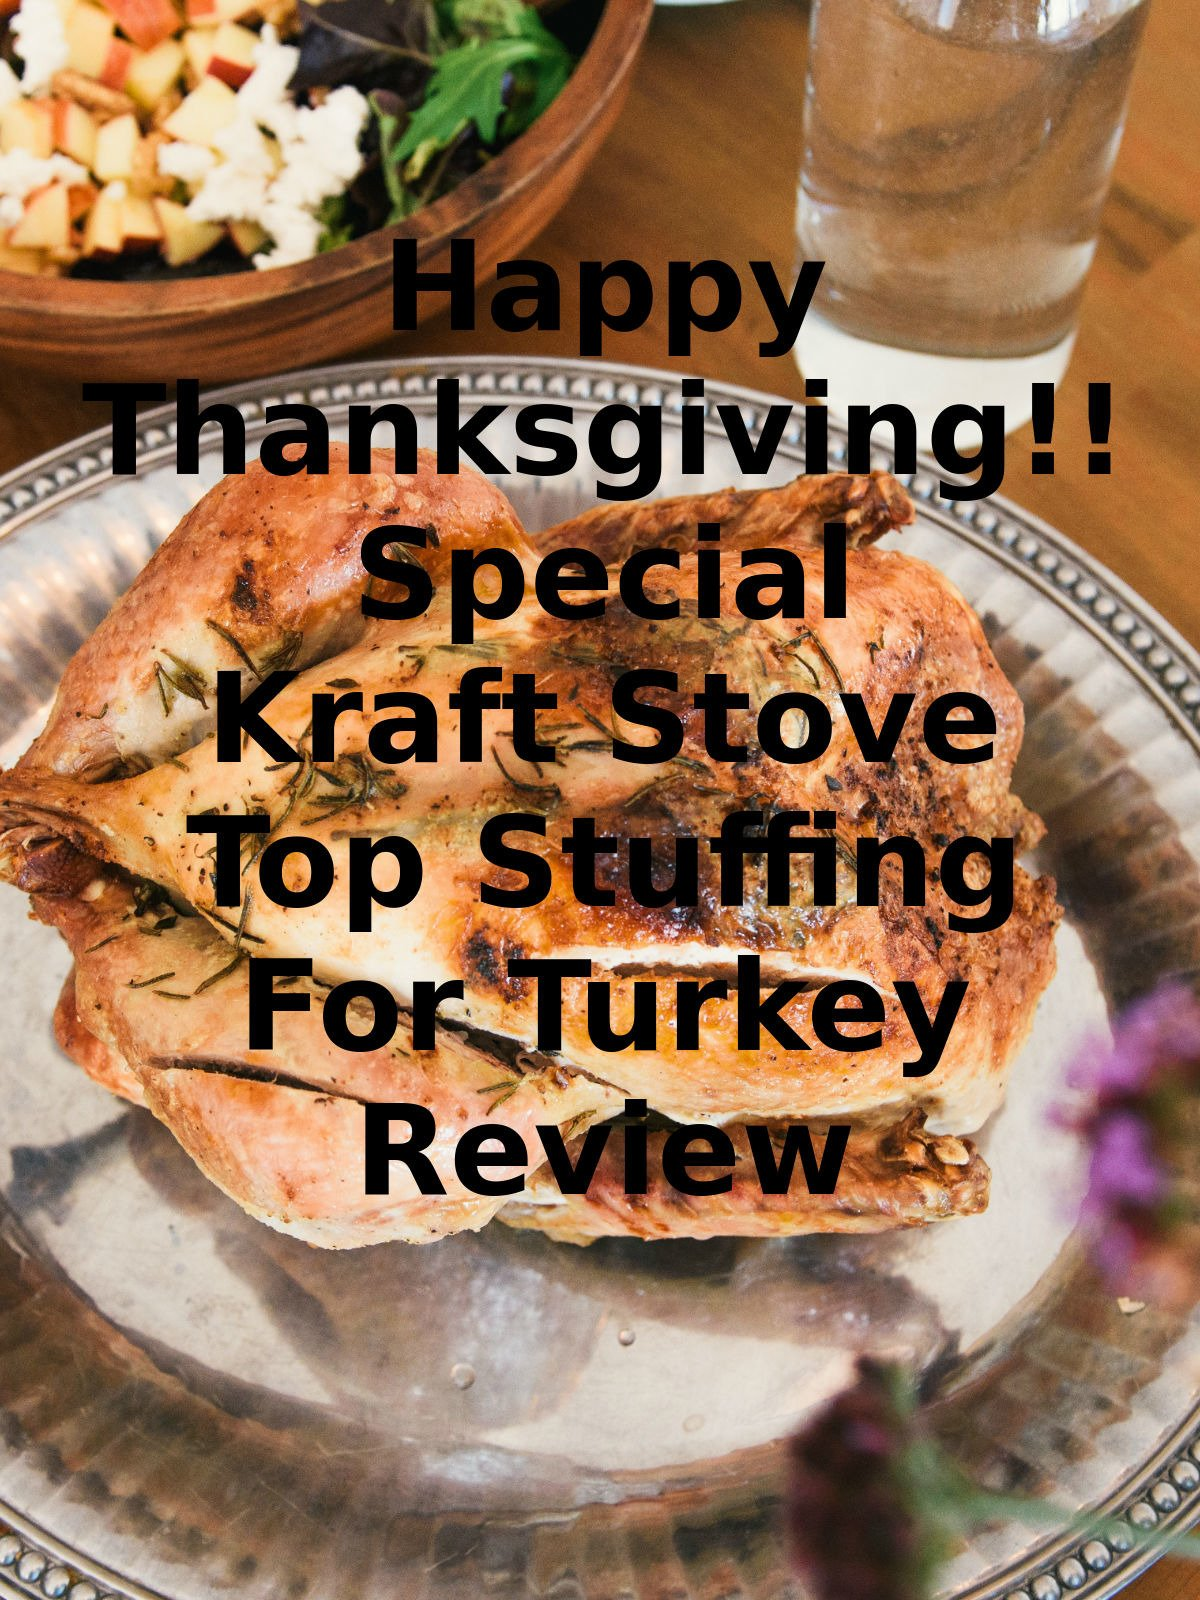 Review: Happy Thanksgiving!! Special Kraft Stove Top Stuffing For Turkey Review